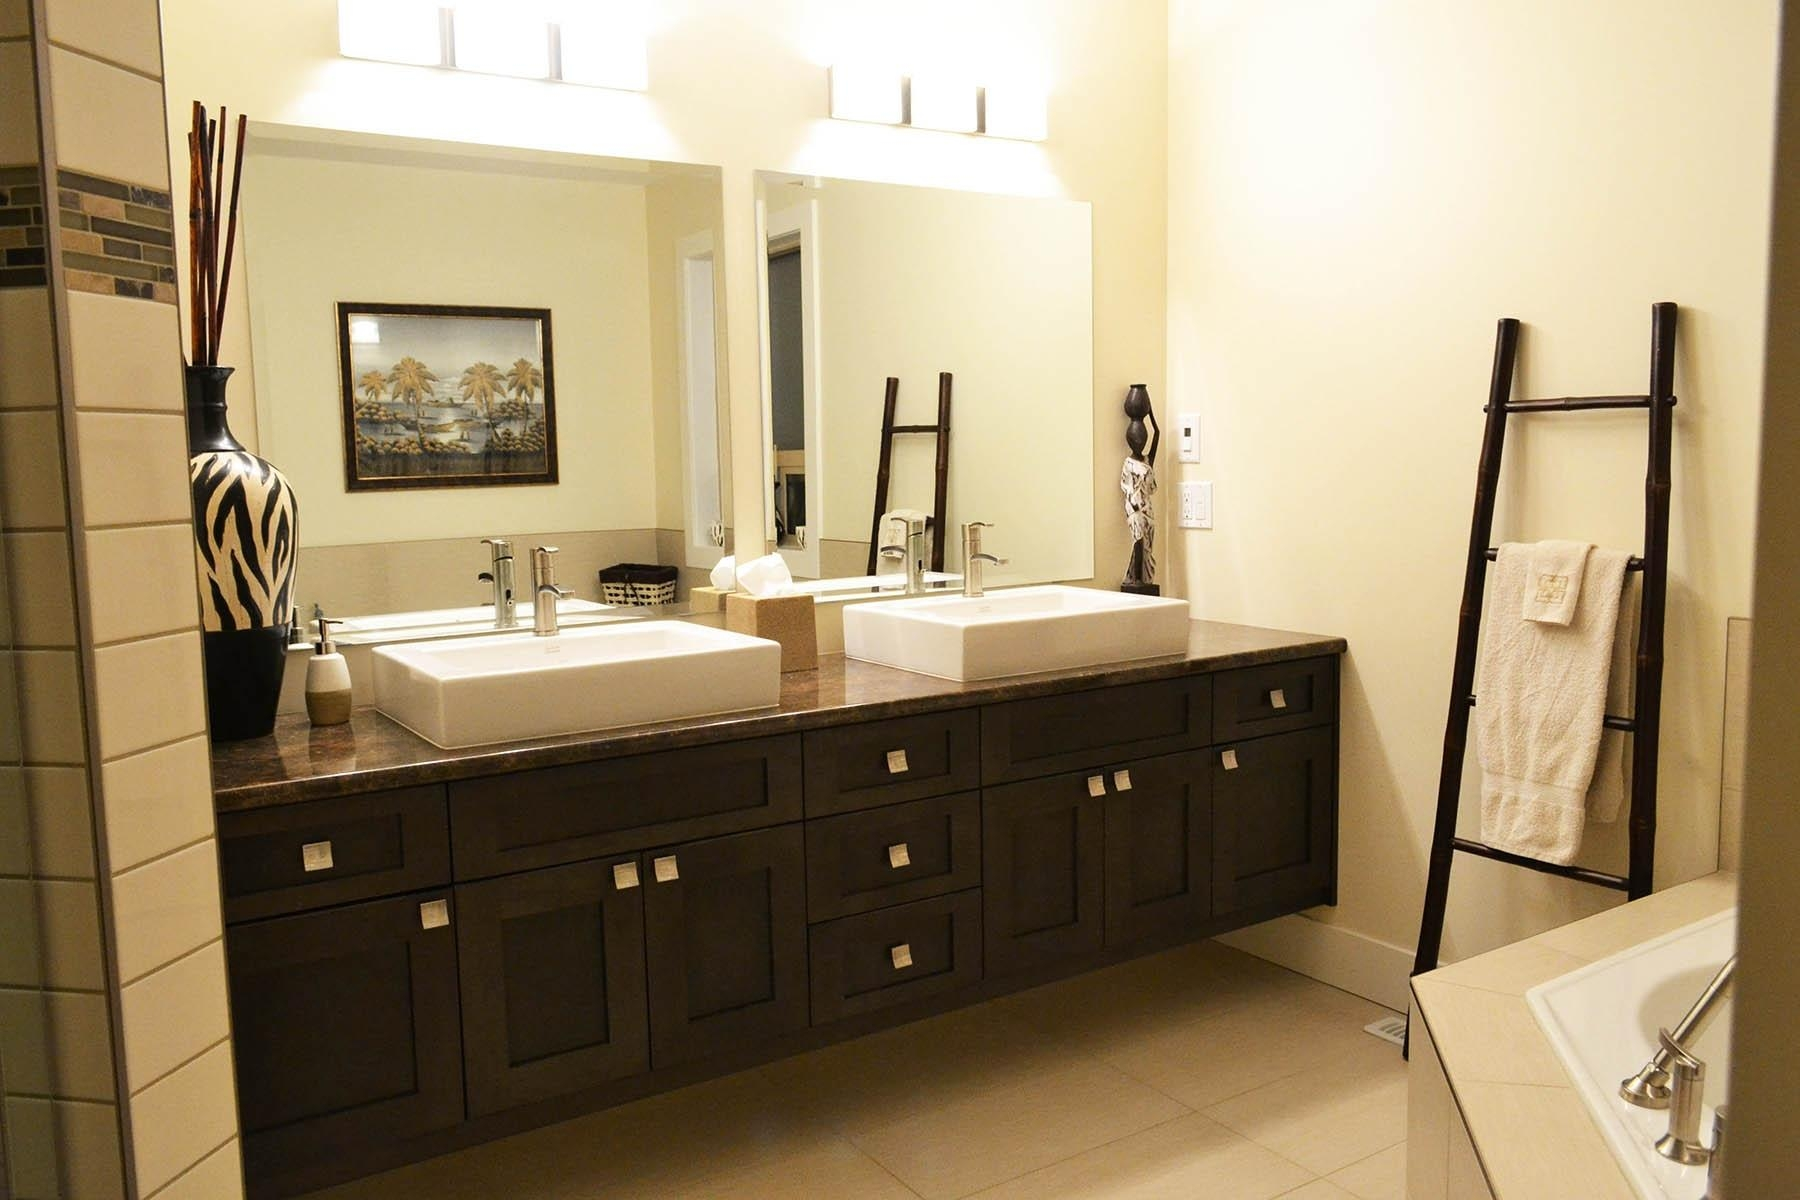 Bathroom Cabinets : Vibrant Creative Double Bathroom Cabinets With Double Vanity Bathroom Mirrors (View 3 of 20)